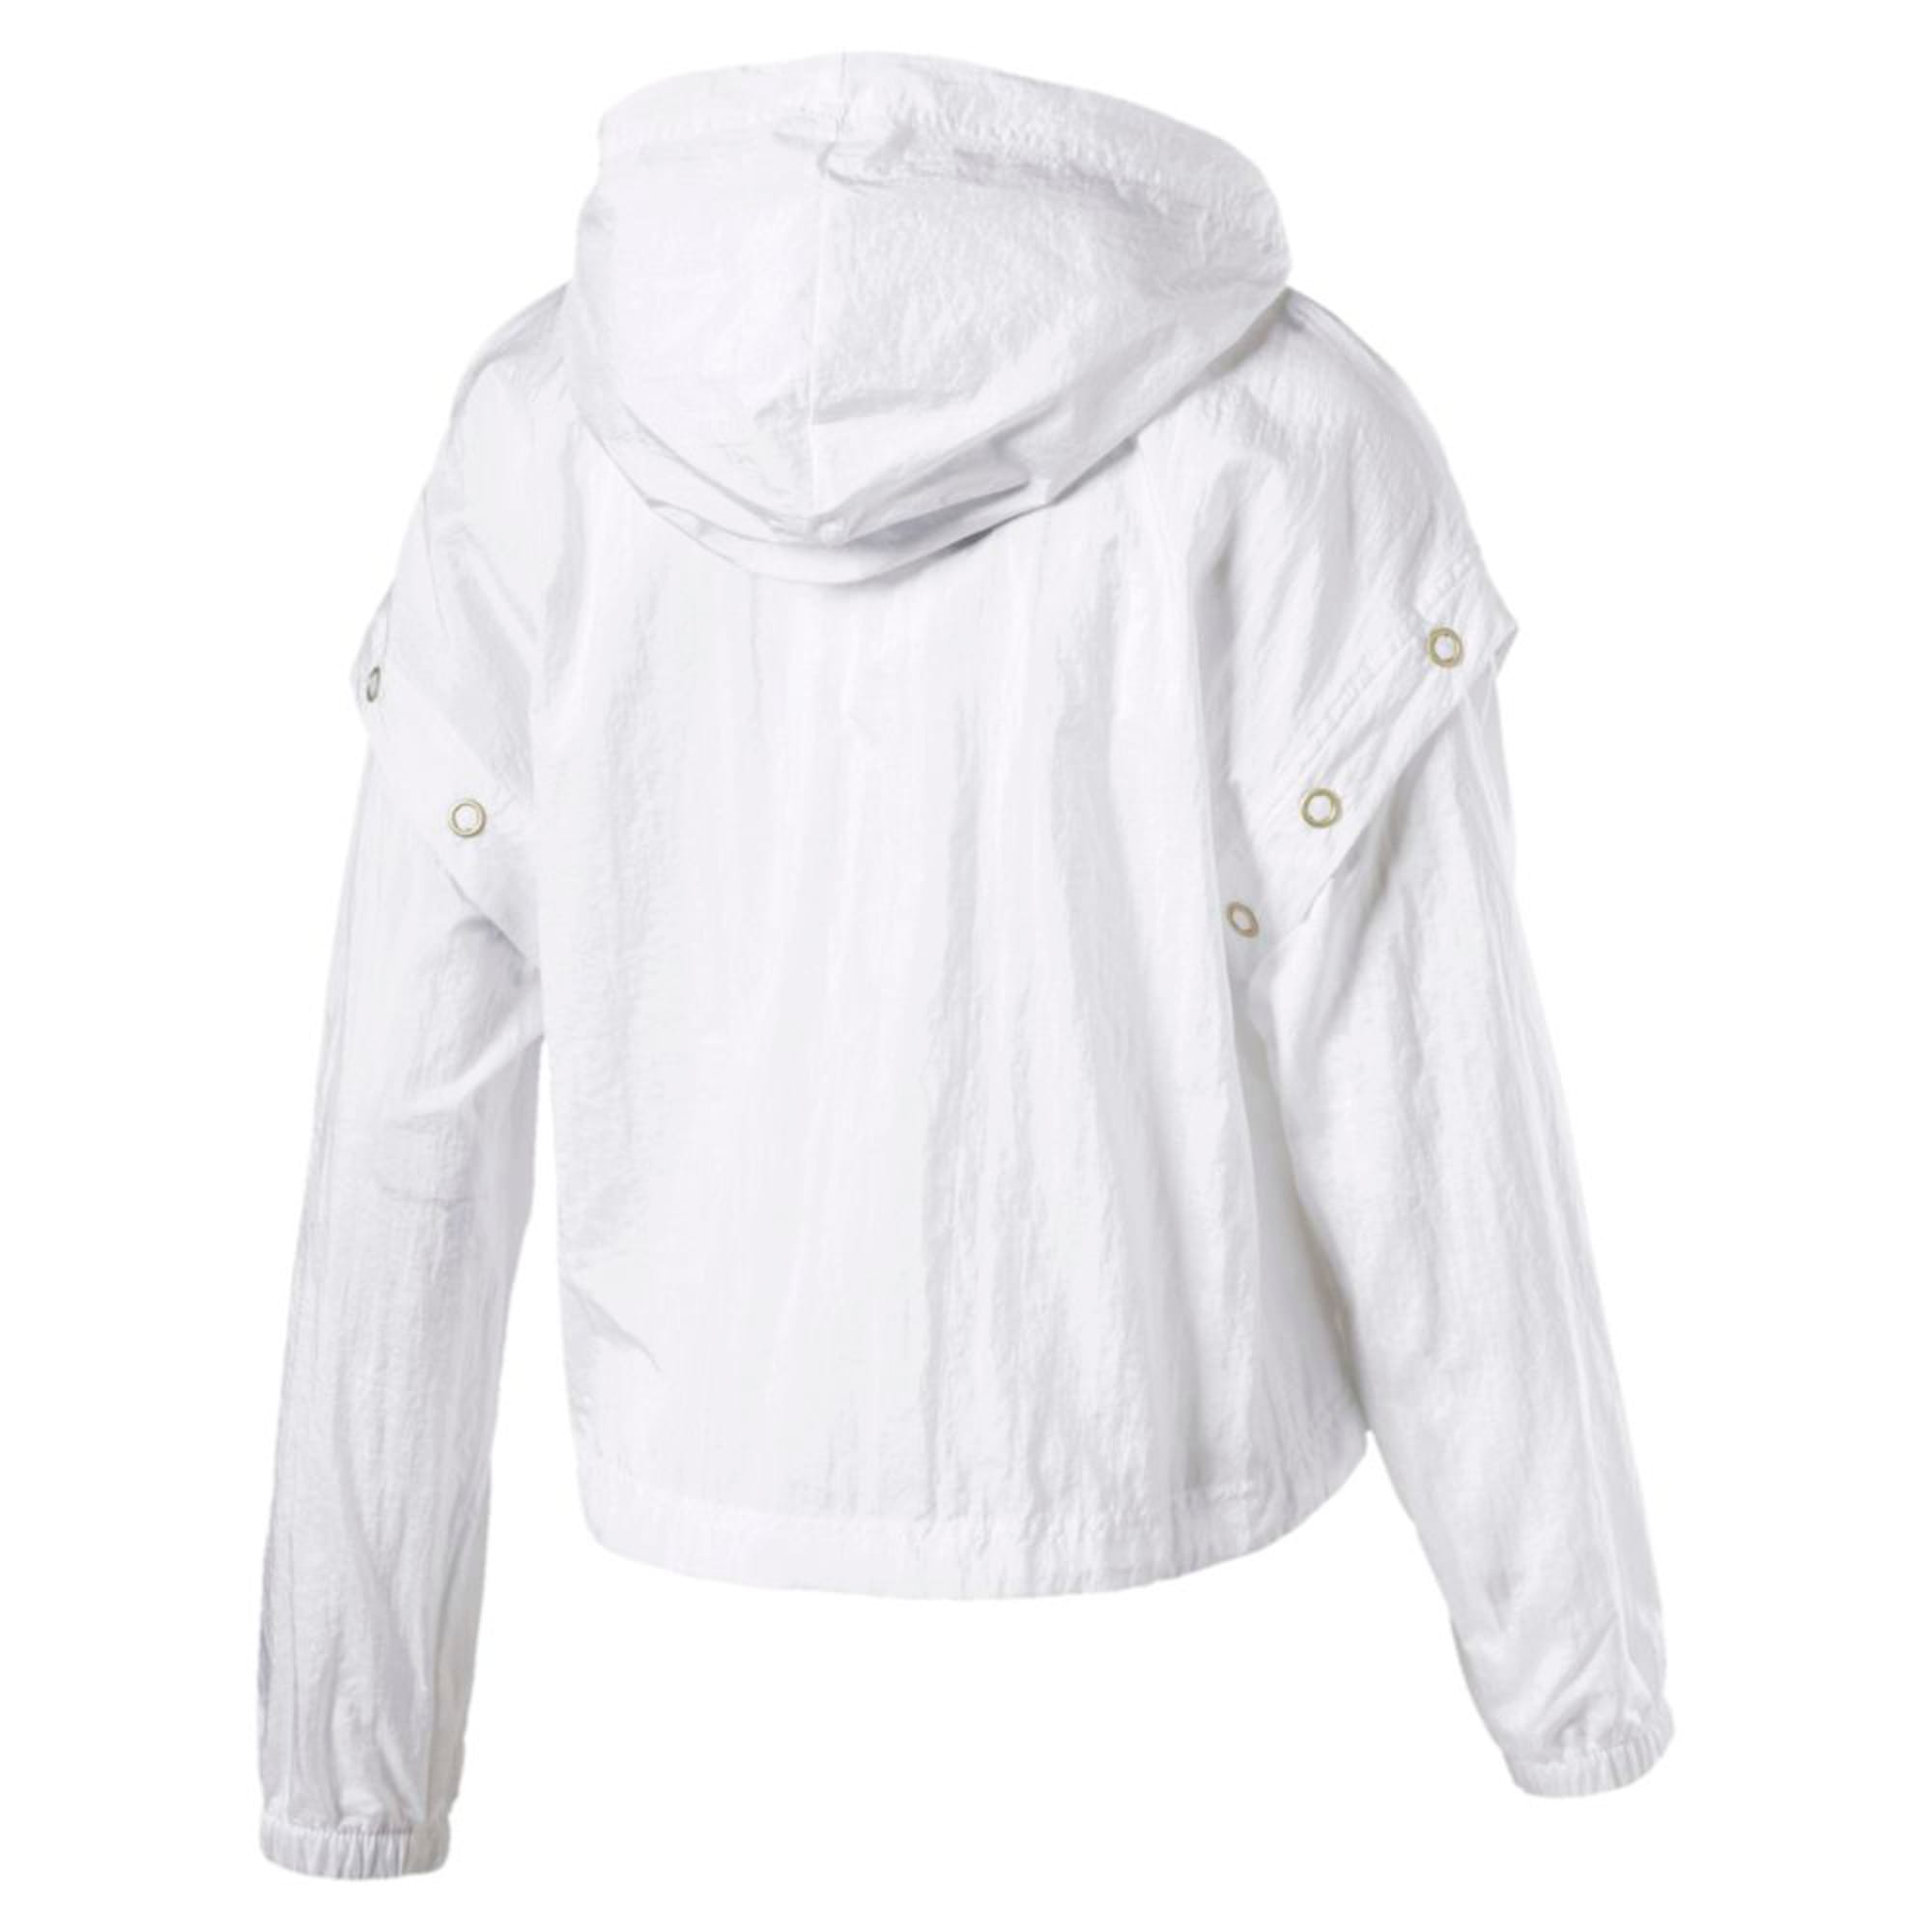 Thumbnail 2 of Retro Windrunner Zip-Up Women's Hooded Jacket, Puma White, medium-IND